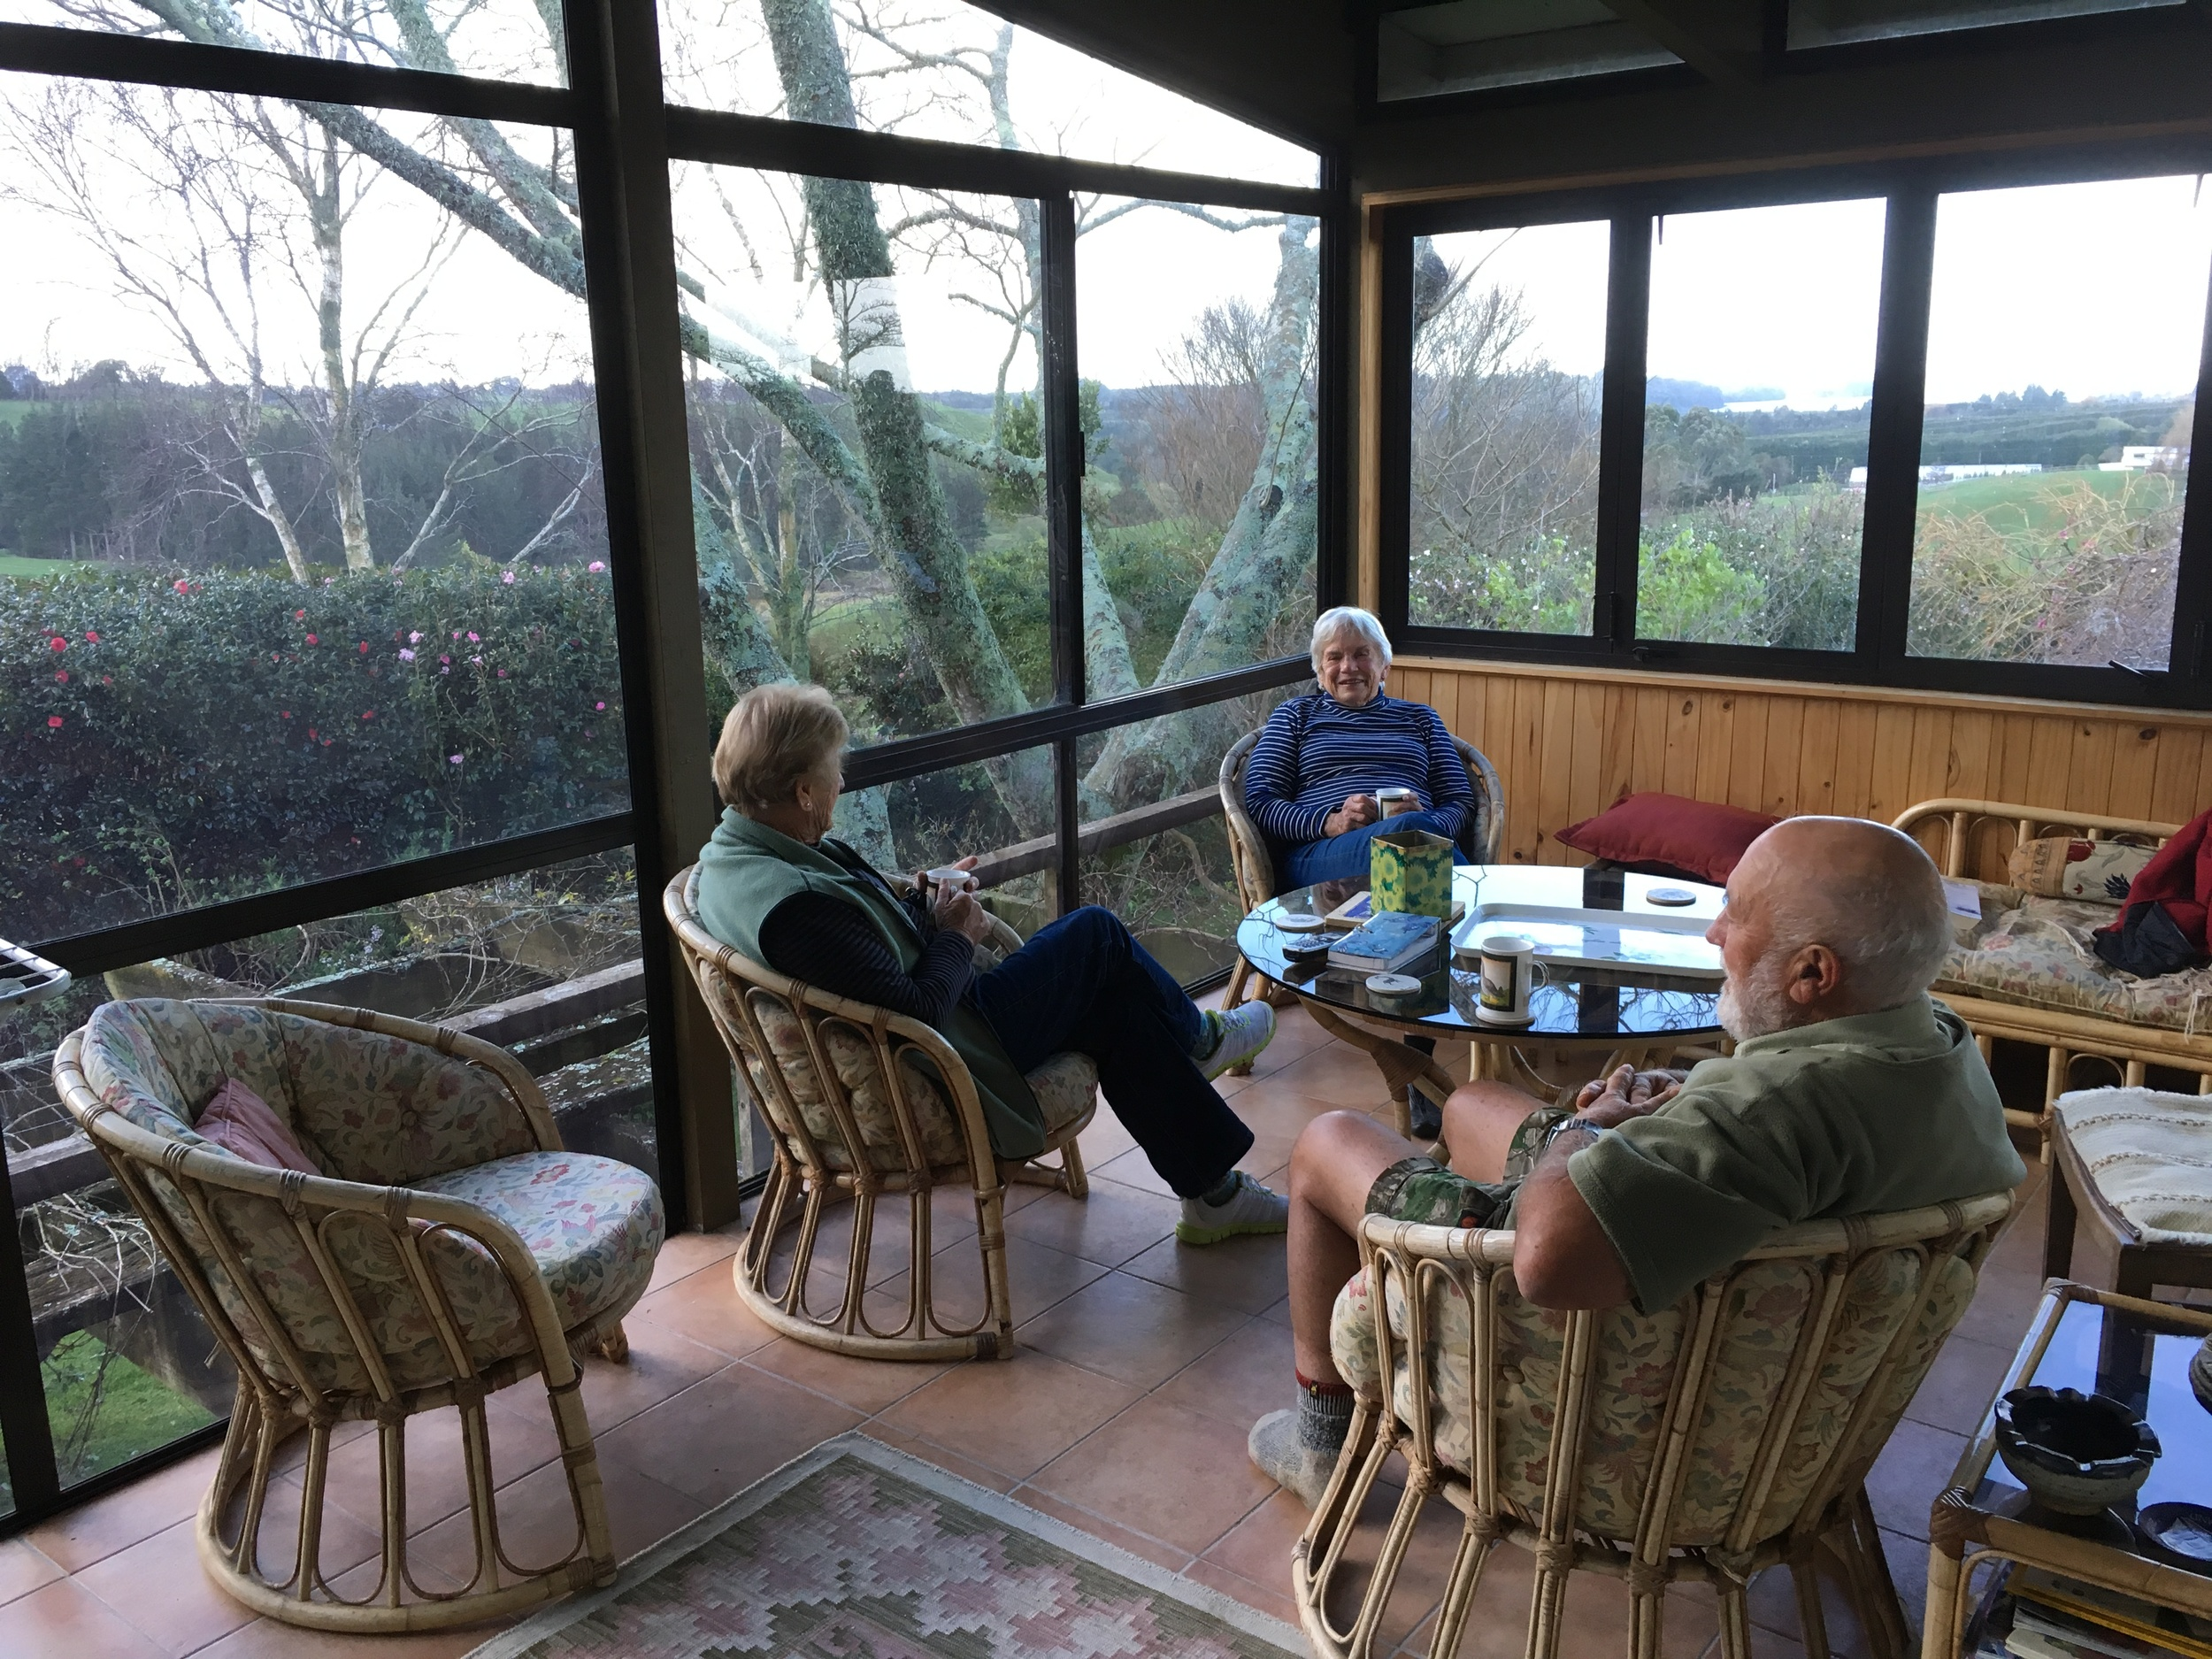 BnB Hosts: MaryAnne (Centre) and Rod (Right), in their sun room overlooking the Katikati District.